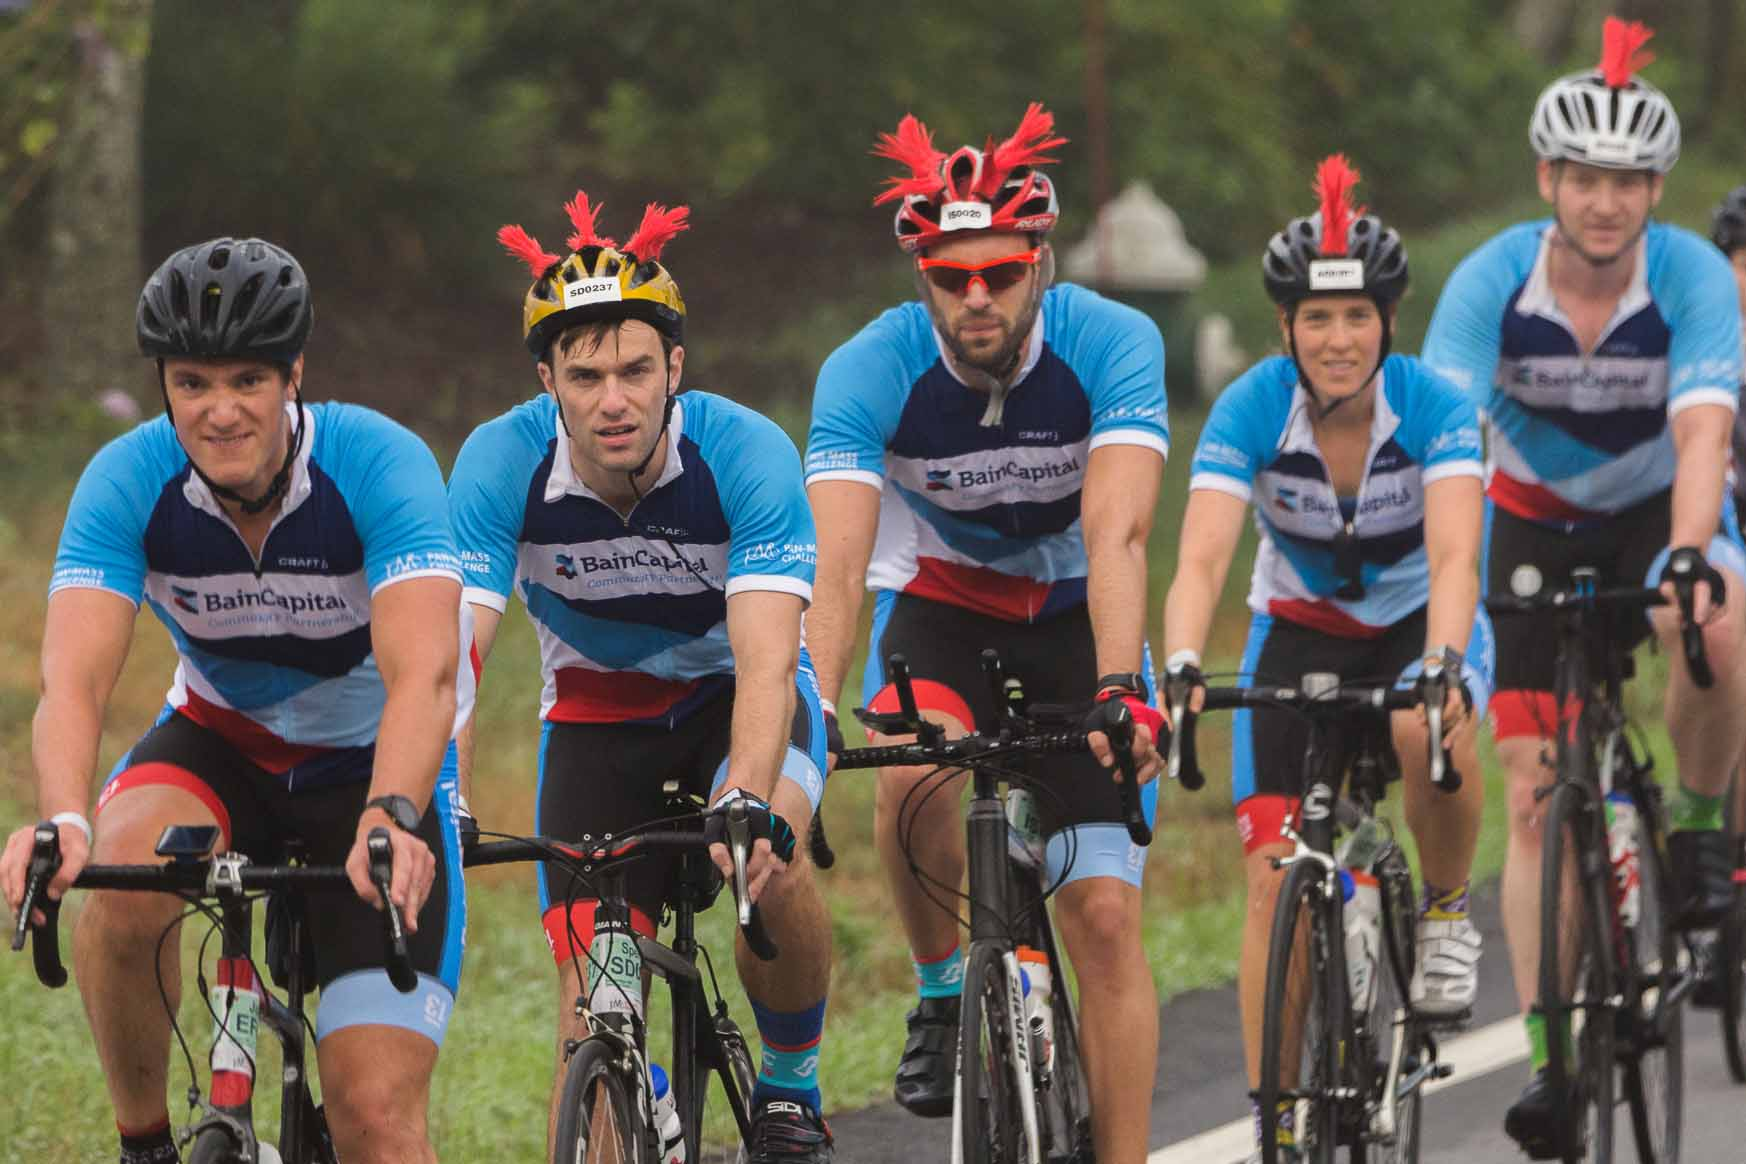 Bain Capital Participates in 2018 Pan-Mass Challenge